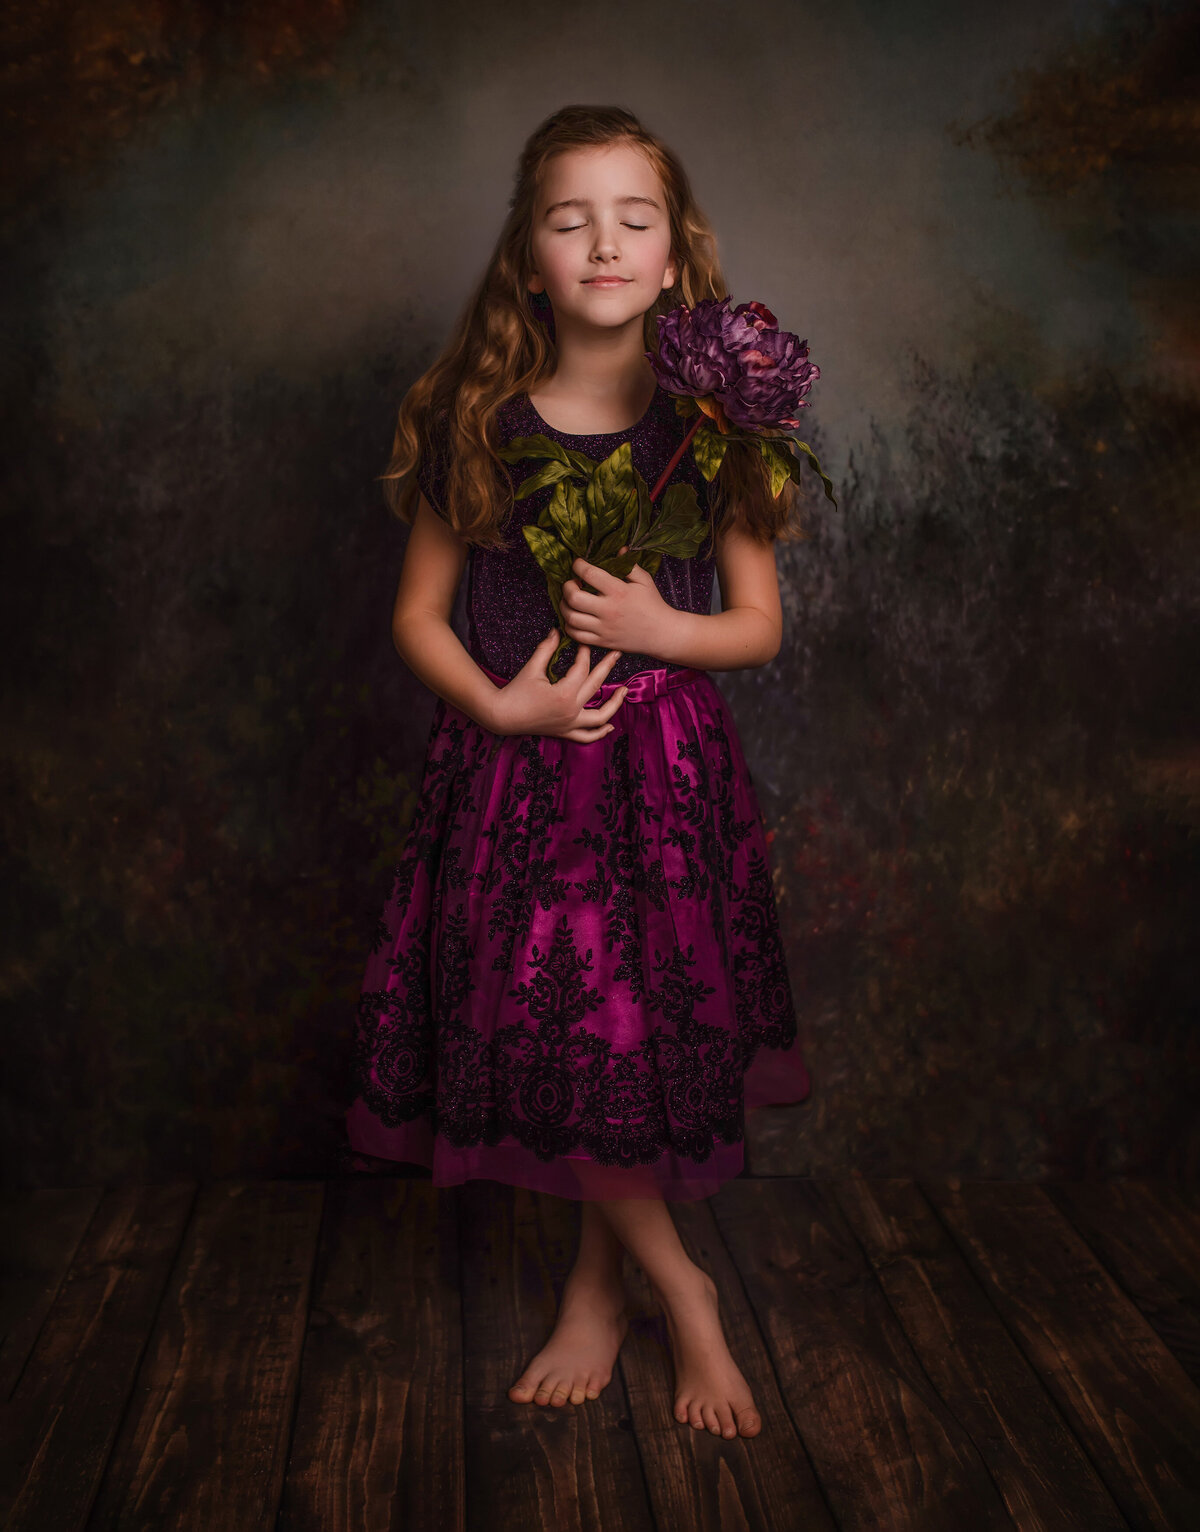 skagit-fine-art-childrens-photographer-0104